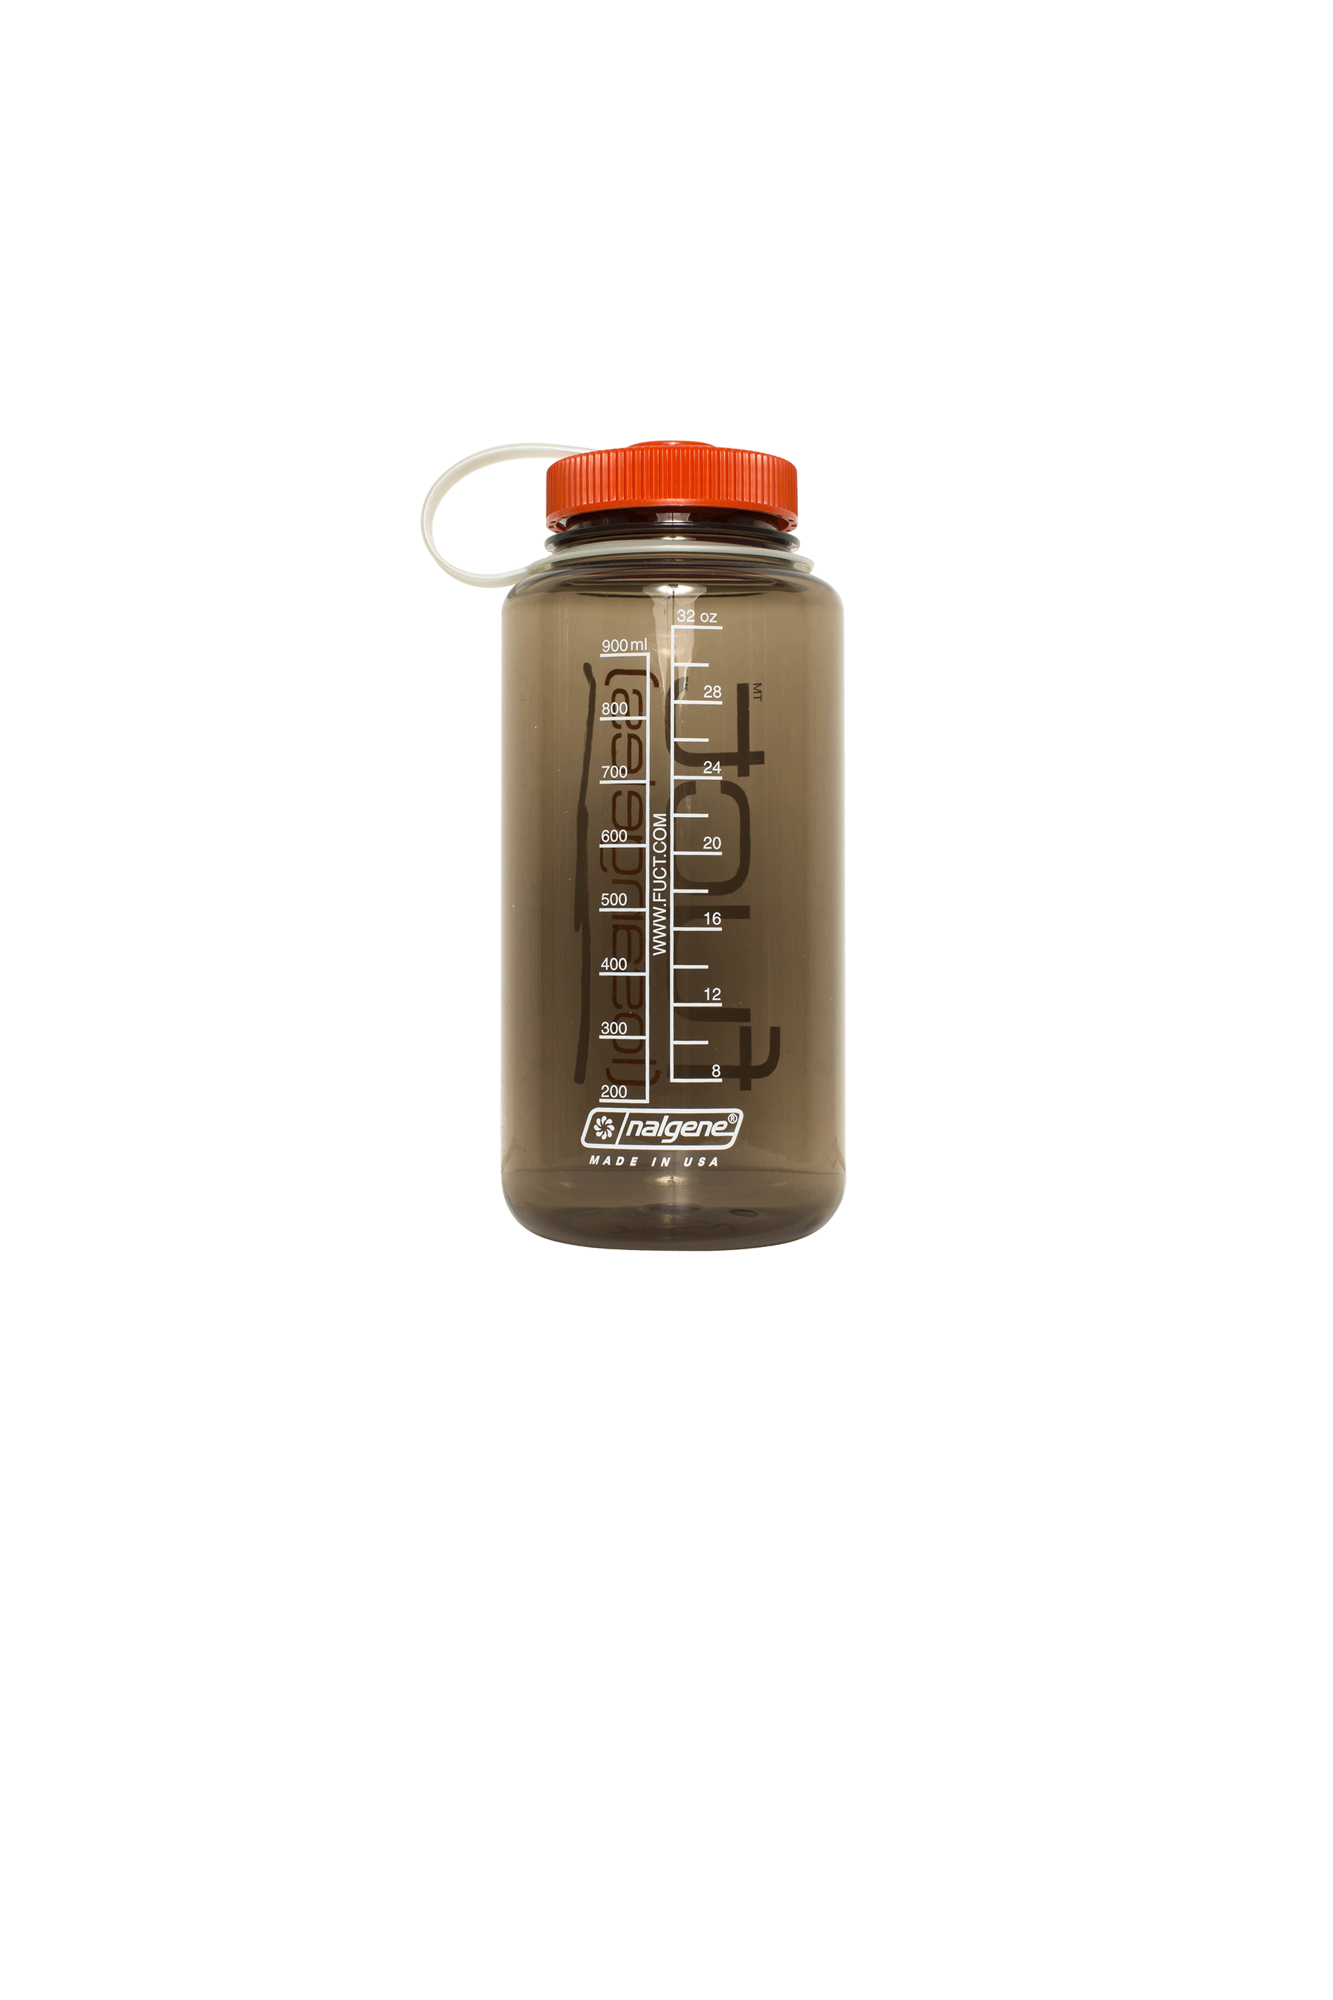 FUCT LA' 320Z NALGENE WATER BOTTLE Black